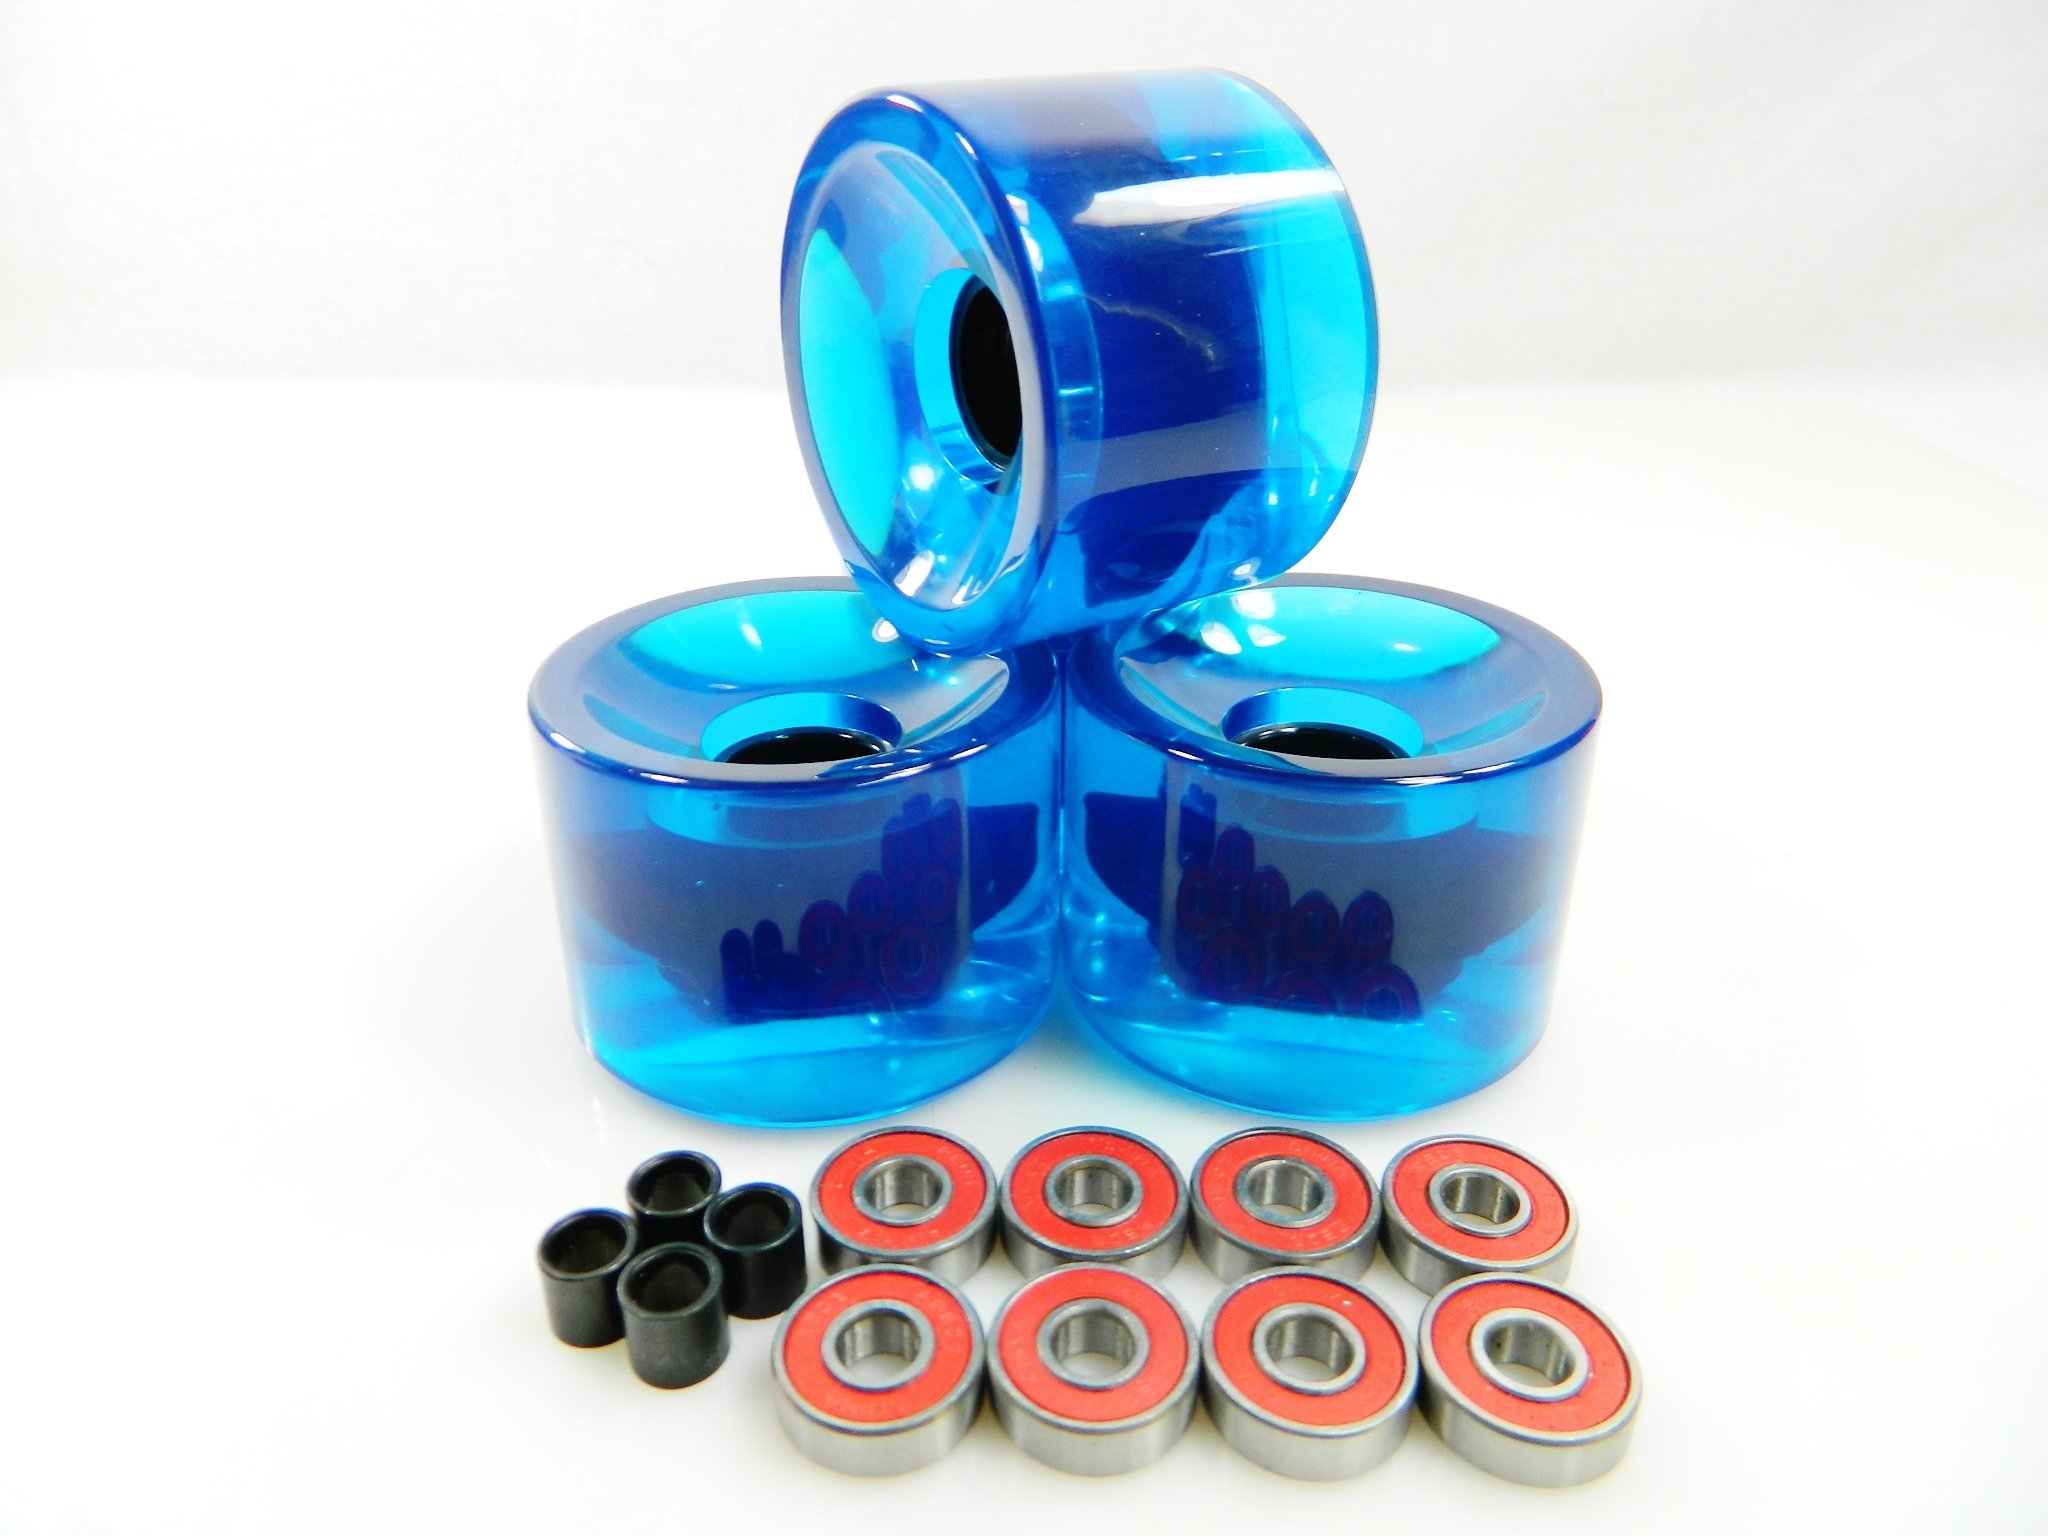 70mm Longboard Skateboard Wheels + ABEC 7 Bearings Spacers (Gel Blue) by Blank Wheels